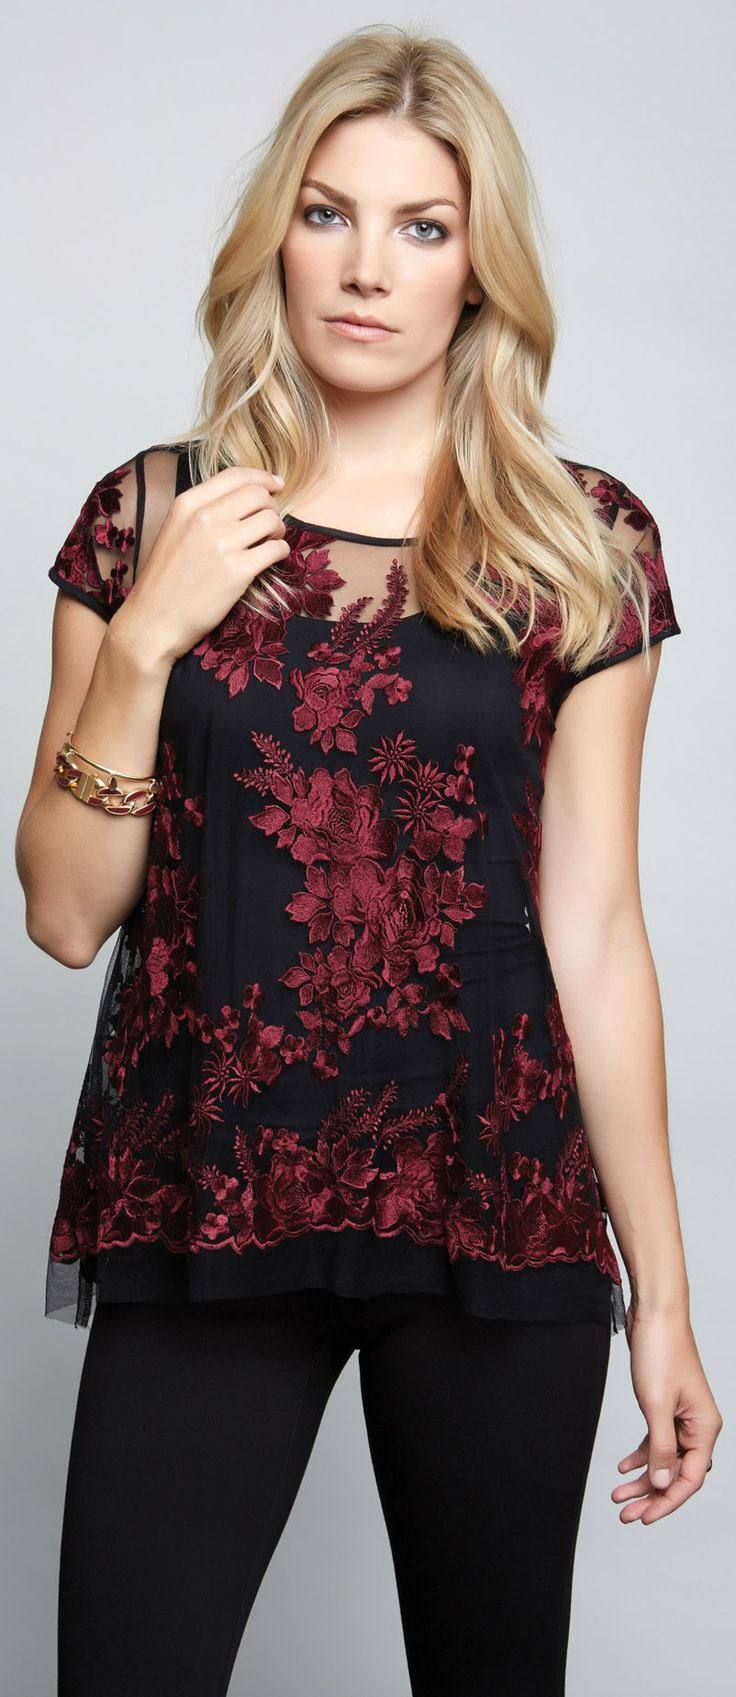 Elegant floral embroidery adds stunning detail to a sheer tulle top with a subtly flared silhouette.